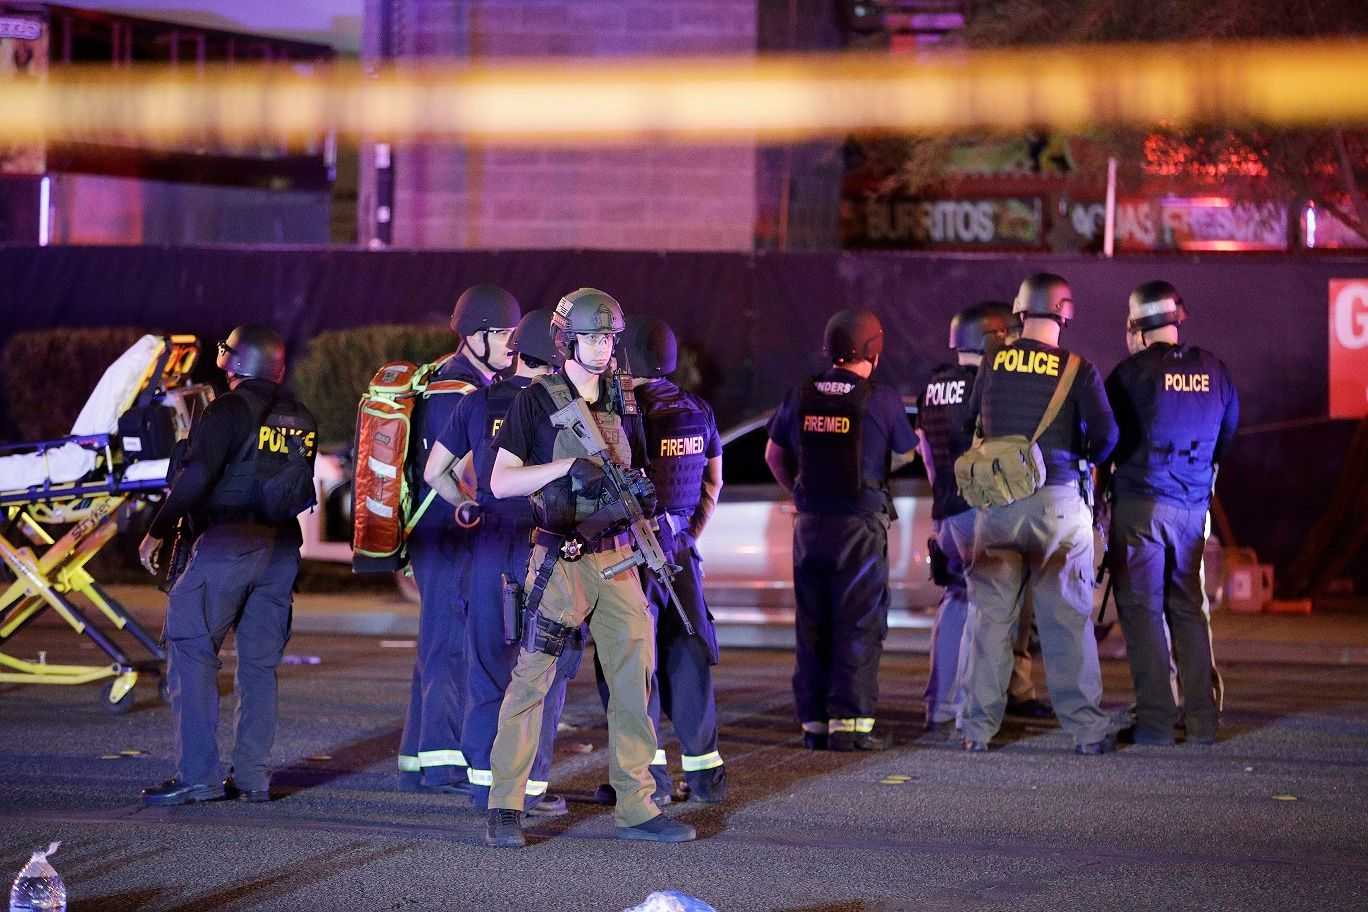 Brother of suspected Las Vegas gunman 'dumbfounded' by mass shooting